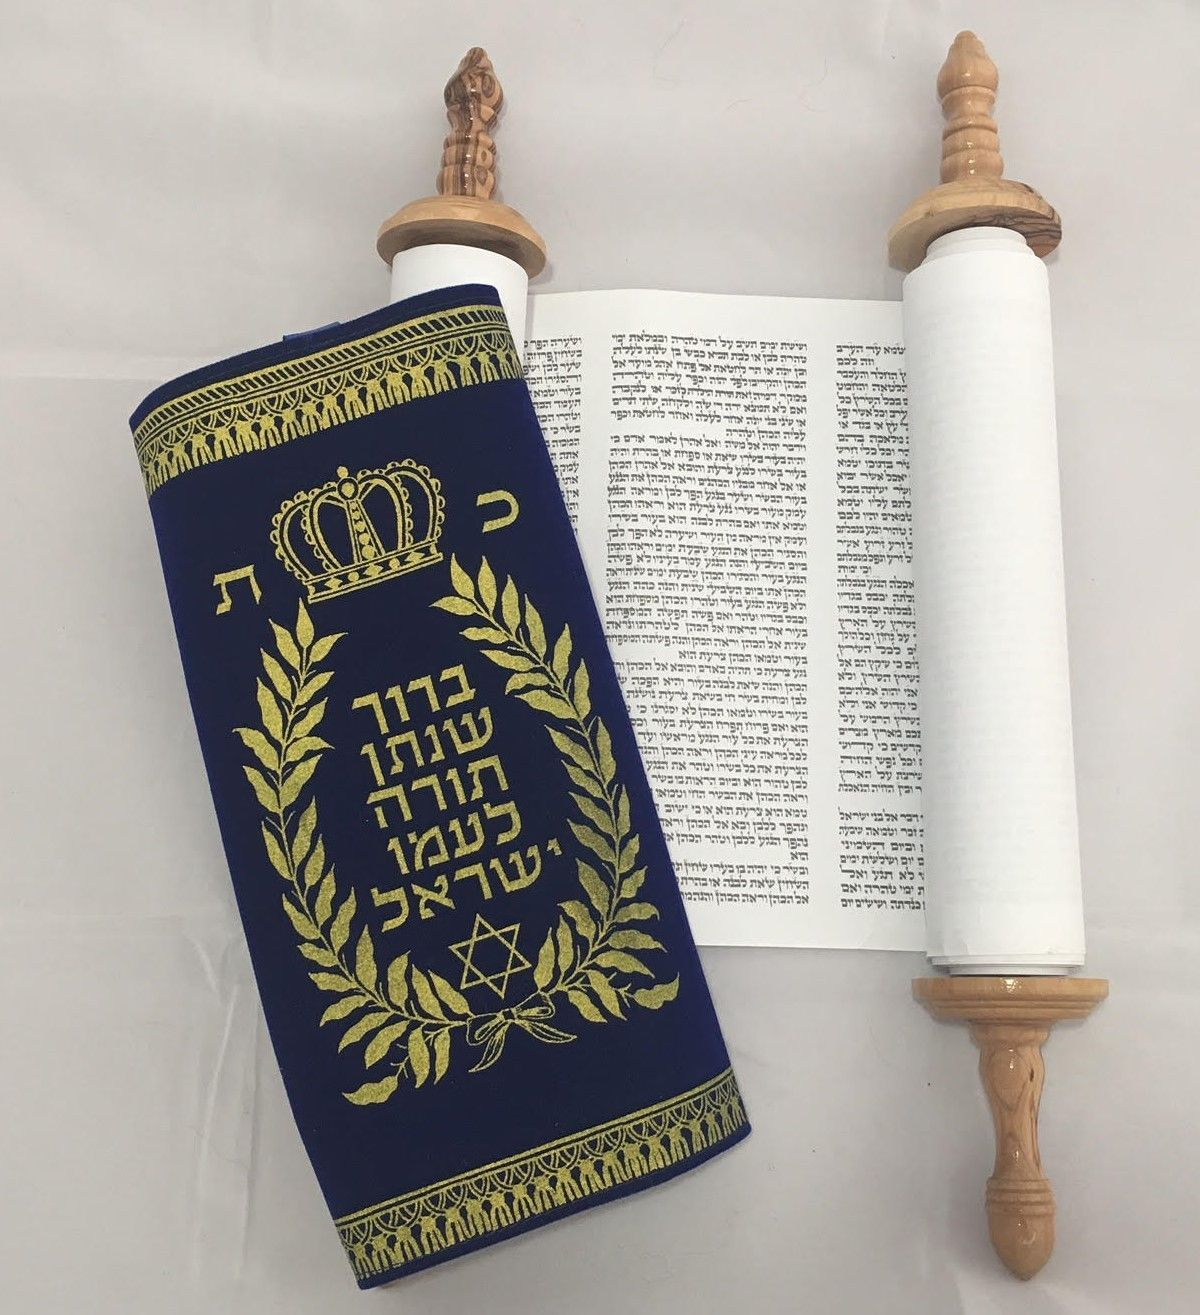 the hebrew bible The tanakh (hebrew: תַּנַךְ, pronounced [taˈnaχ] or [təˈnax] also tenakh, tenak, tanach) is a name used in judaism for the canon of the hebrew bible the tanakh is also known as the masoretic text or the miqra the name is an acronym formed from the initial hebrew letters of the masoretic text's three traditional subdivisions.